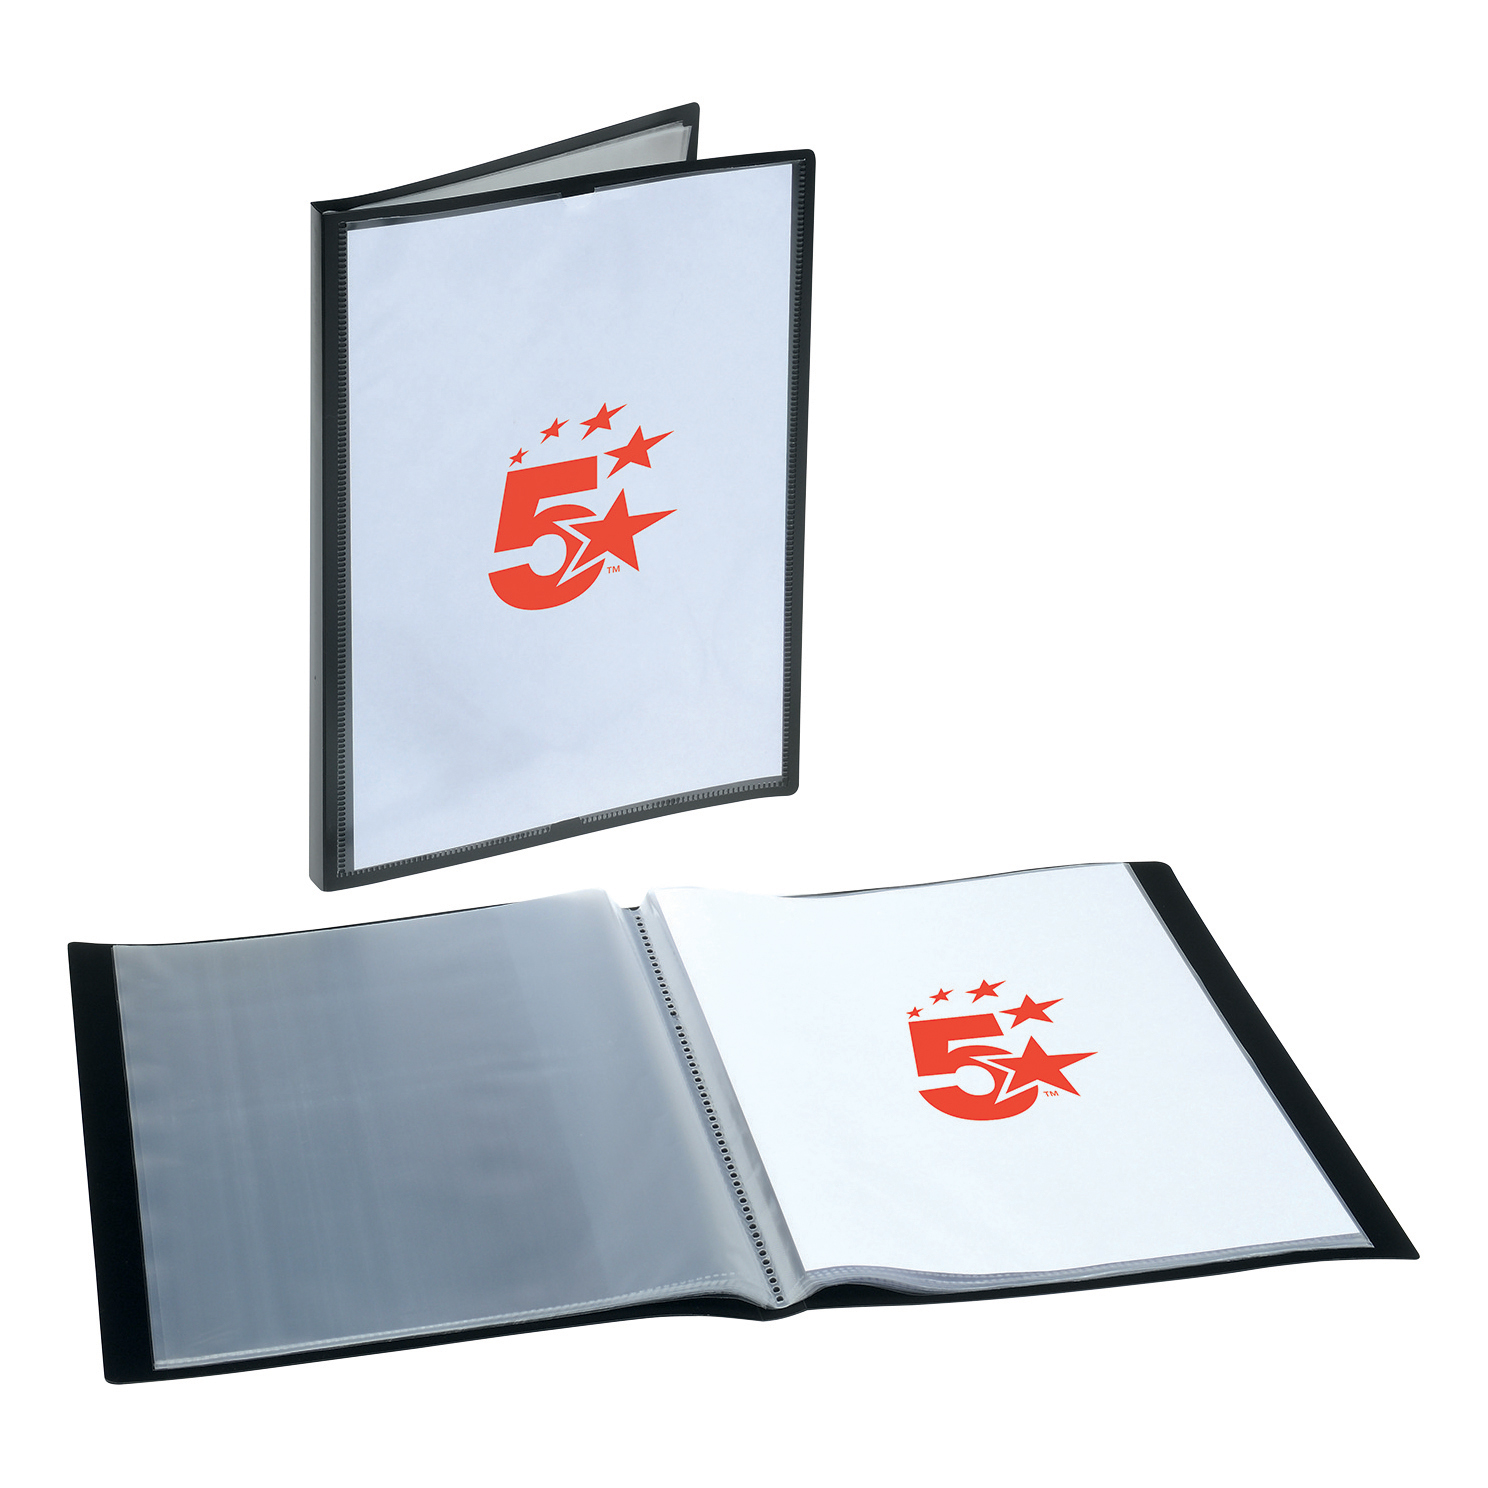 5 Star Office Display Book Personalisable Cover Polypropylene 40 Pockets A4 Black